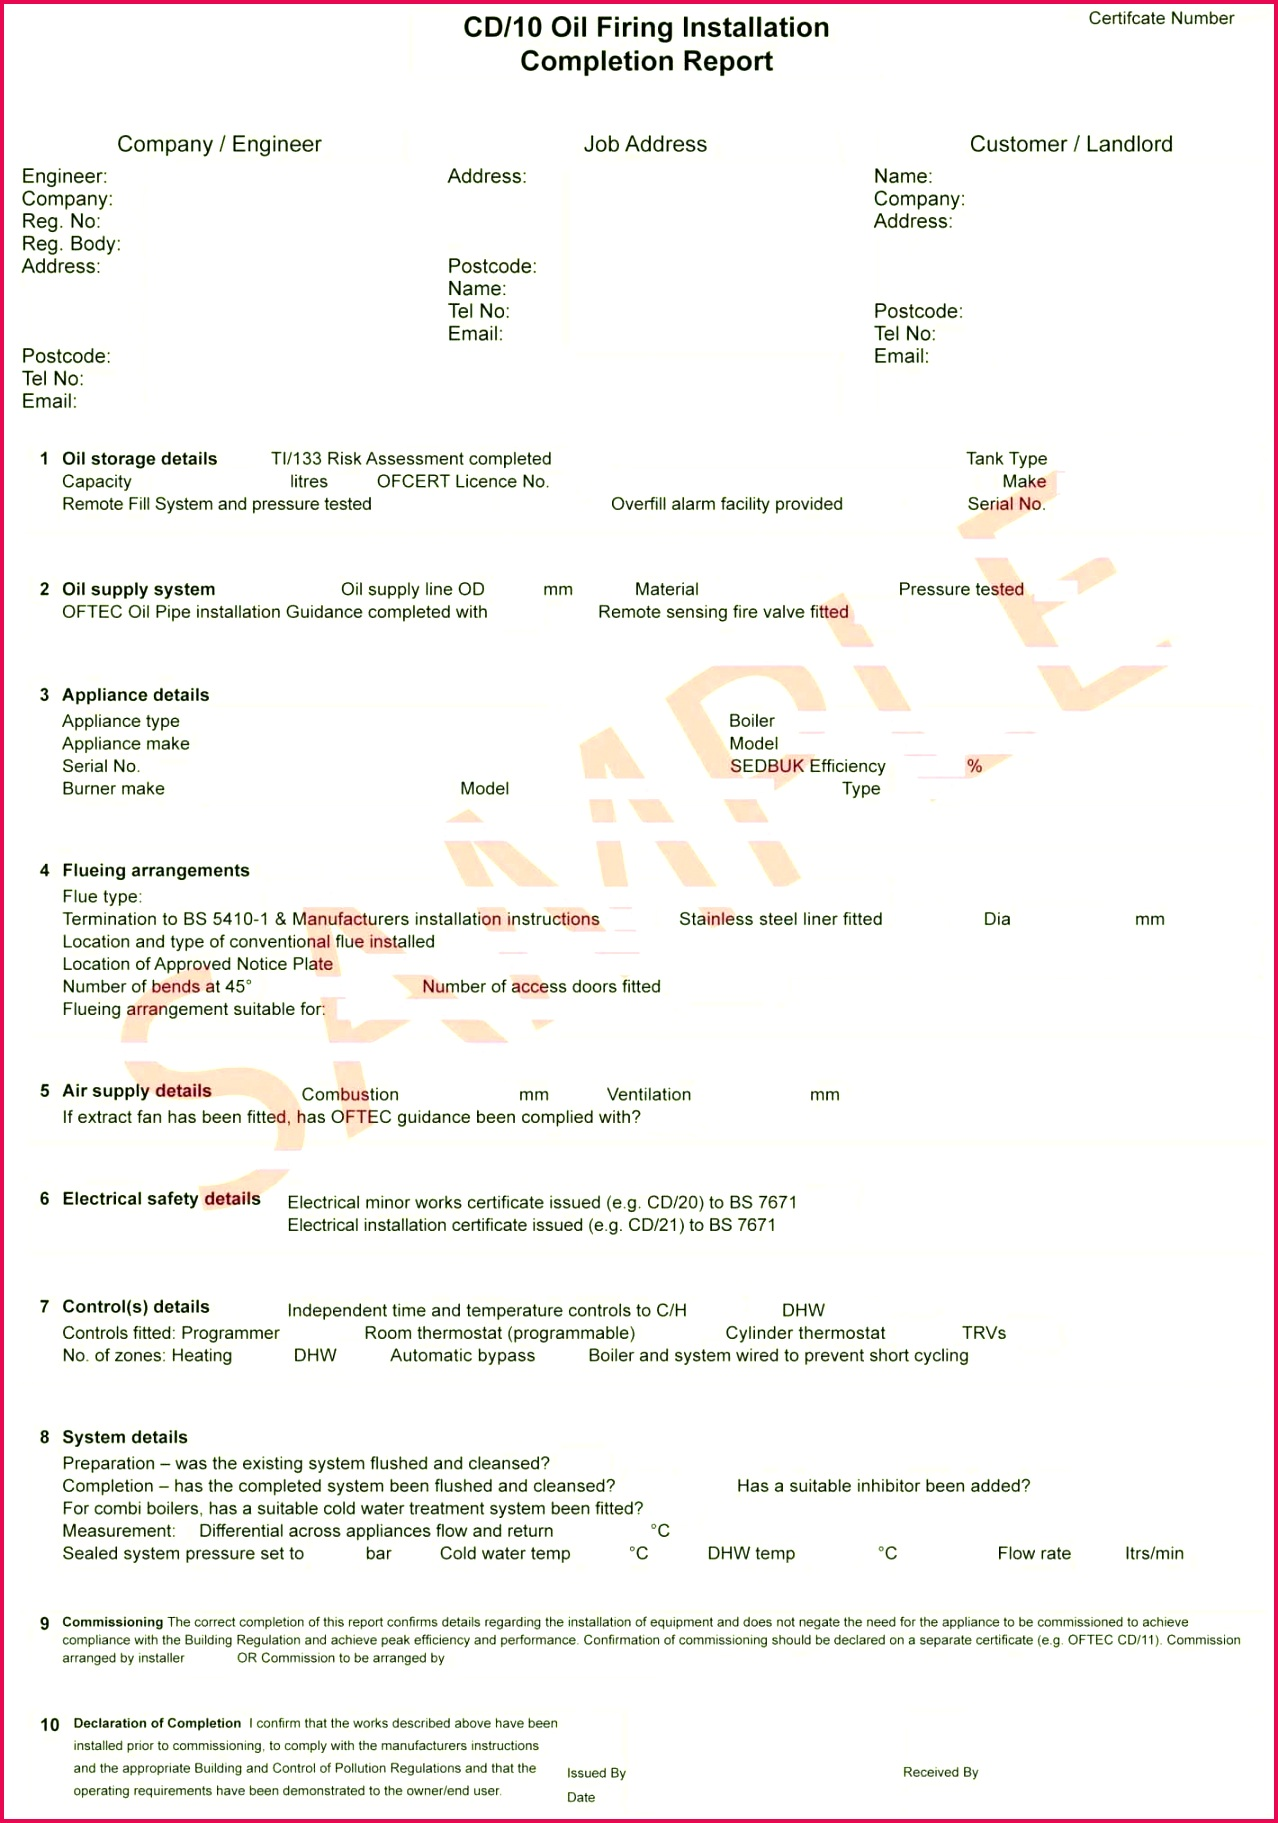 Excell Invoice Template Inspirational Standard Work Templates Excel Inspirational Standard Work